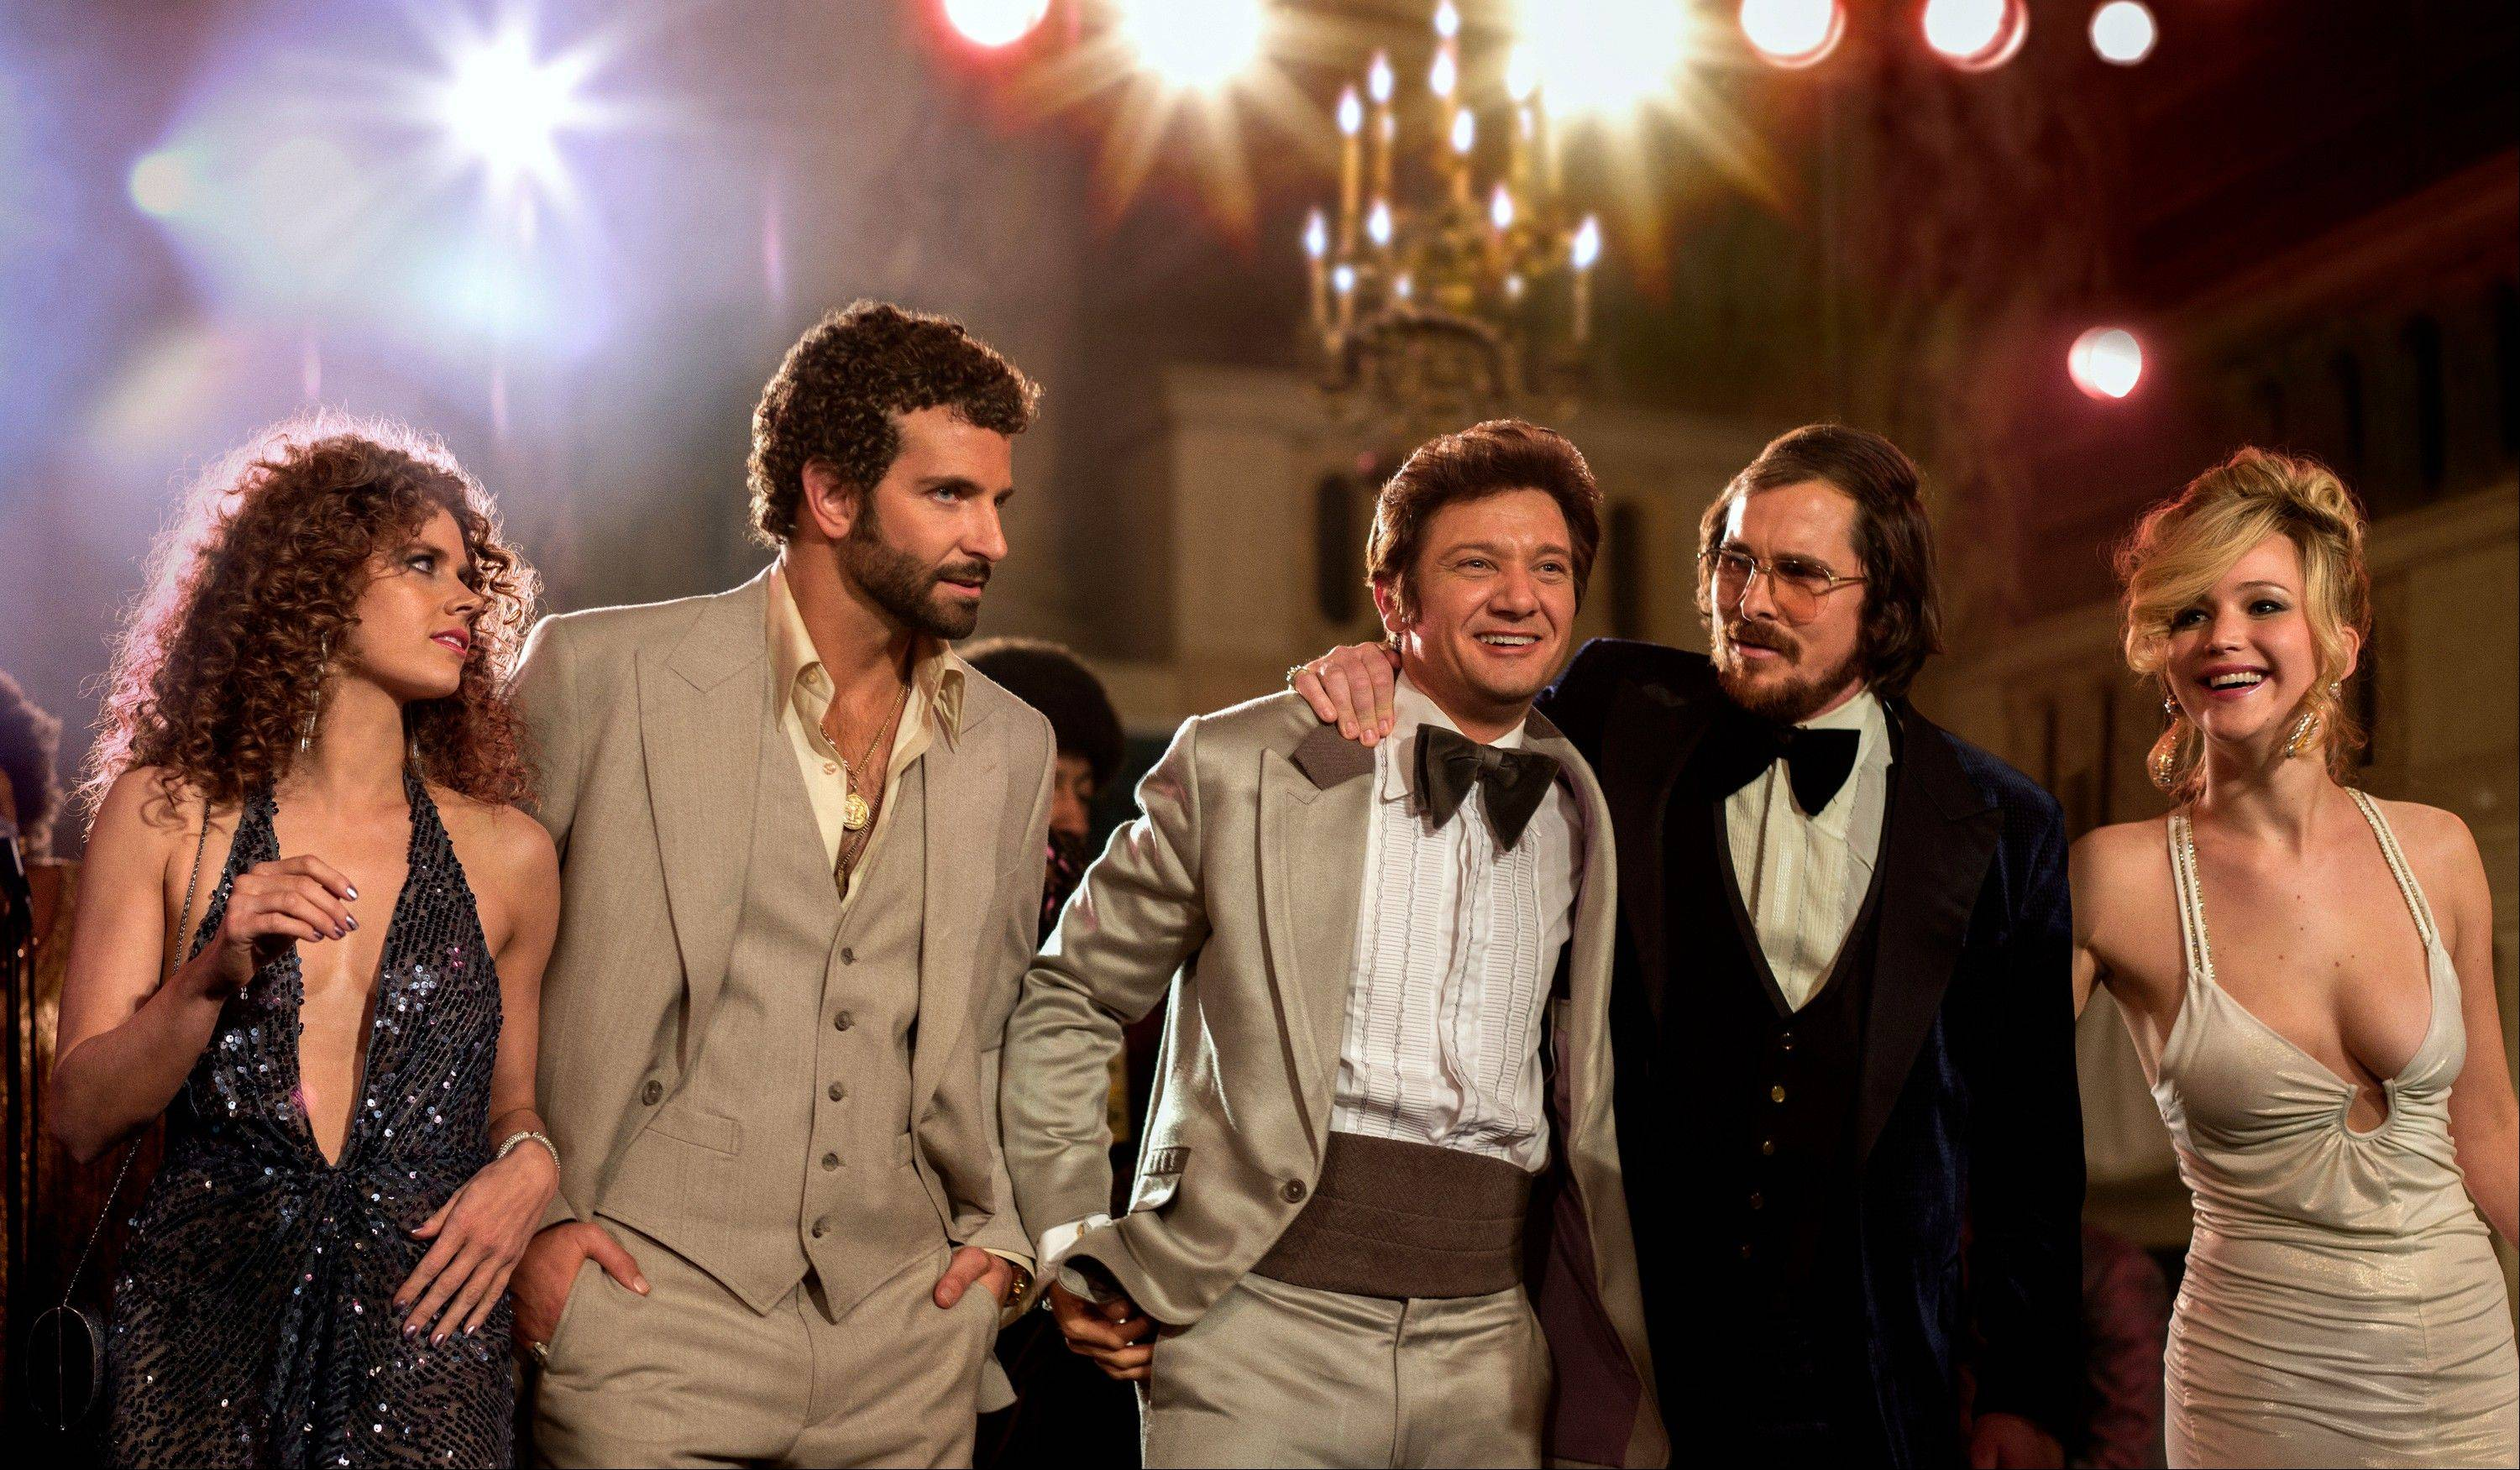 'American Hustle,' 'Gravity' tie with 10 Oscar noms